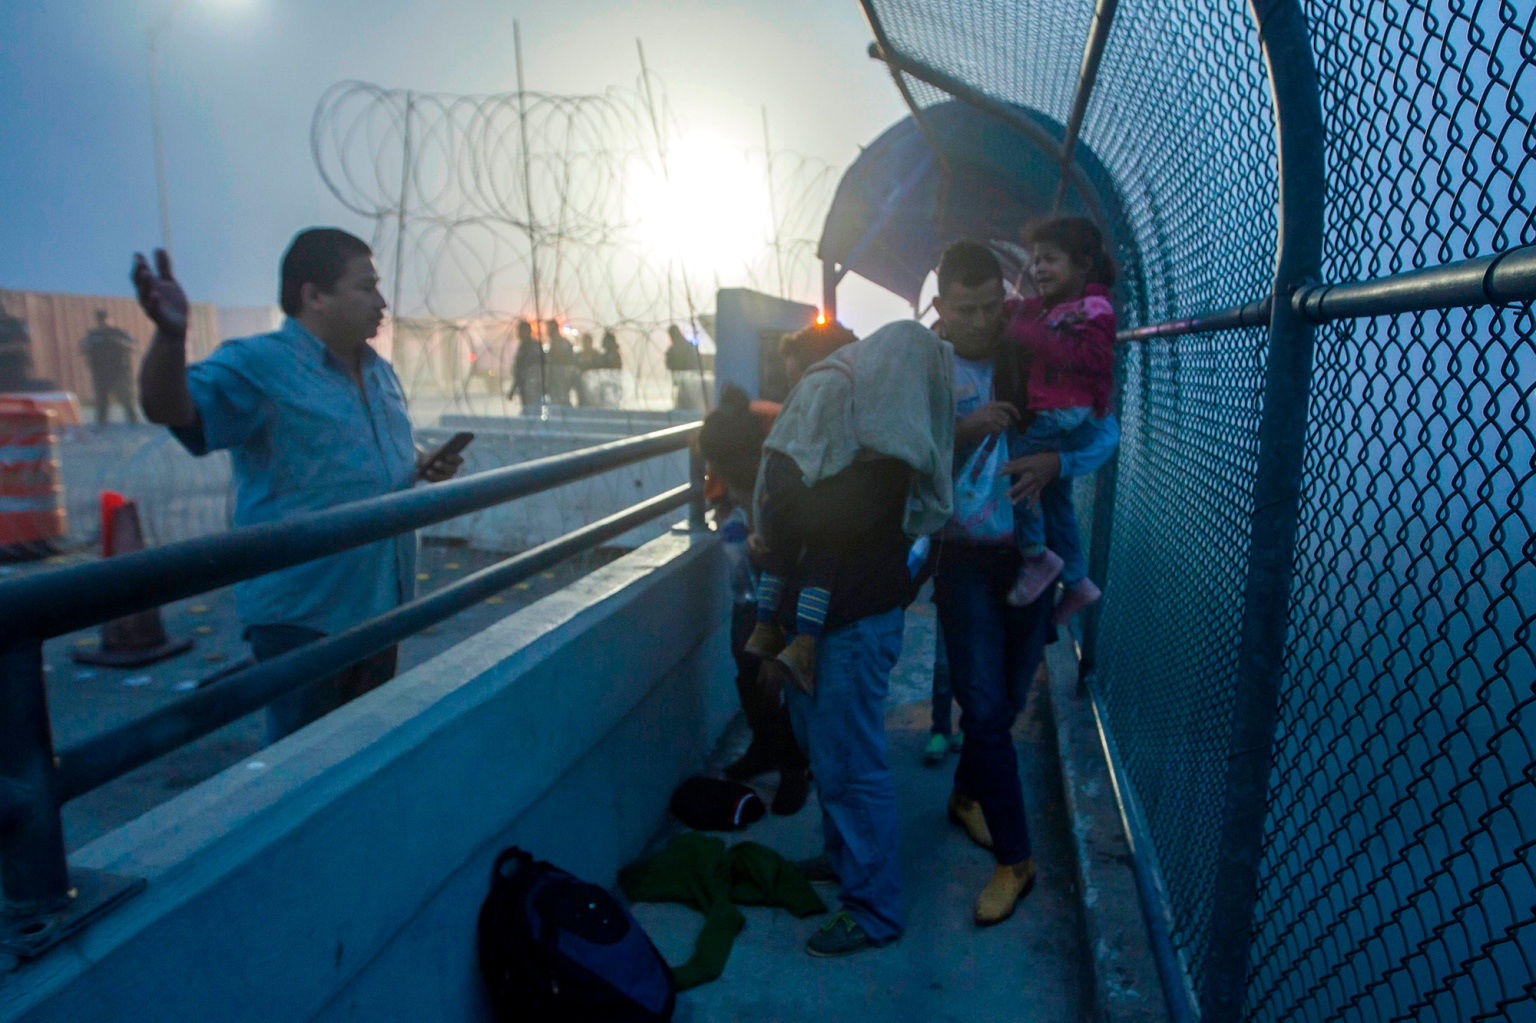 A Honduran family walks back to Piedras Negras, in Coahuila state, Mexico, at the international bridge after being rejected by U.S. authorities in their attempt to enter Eagle Pass, Texas, on Feb. 6. (Julio Cesar Aguilar/AFP/Getty Images)